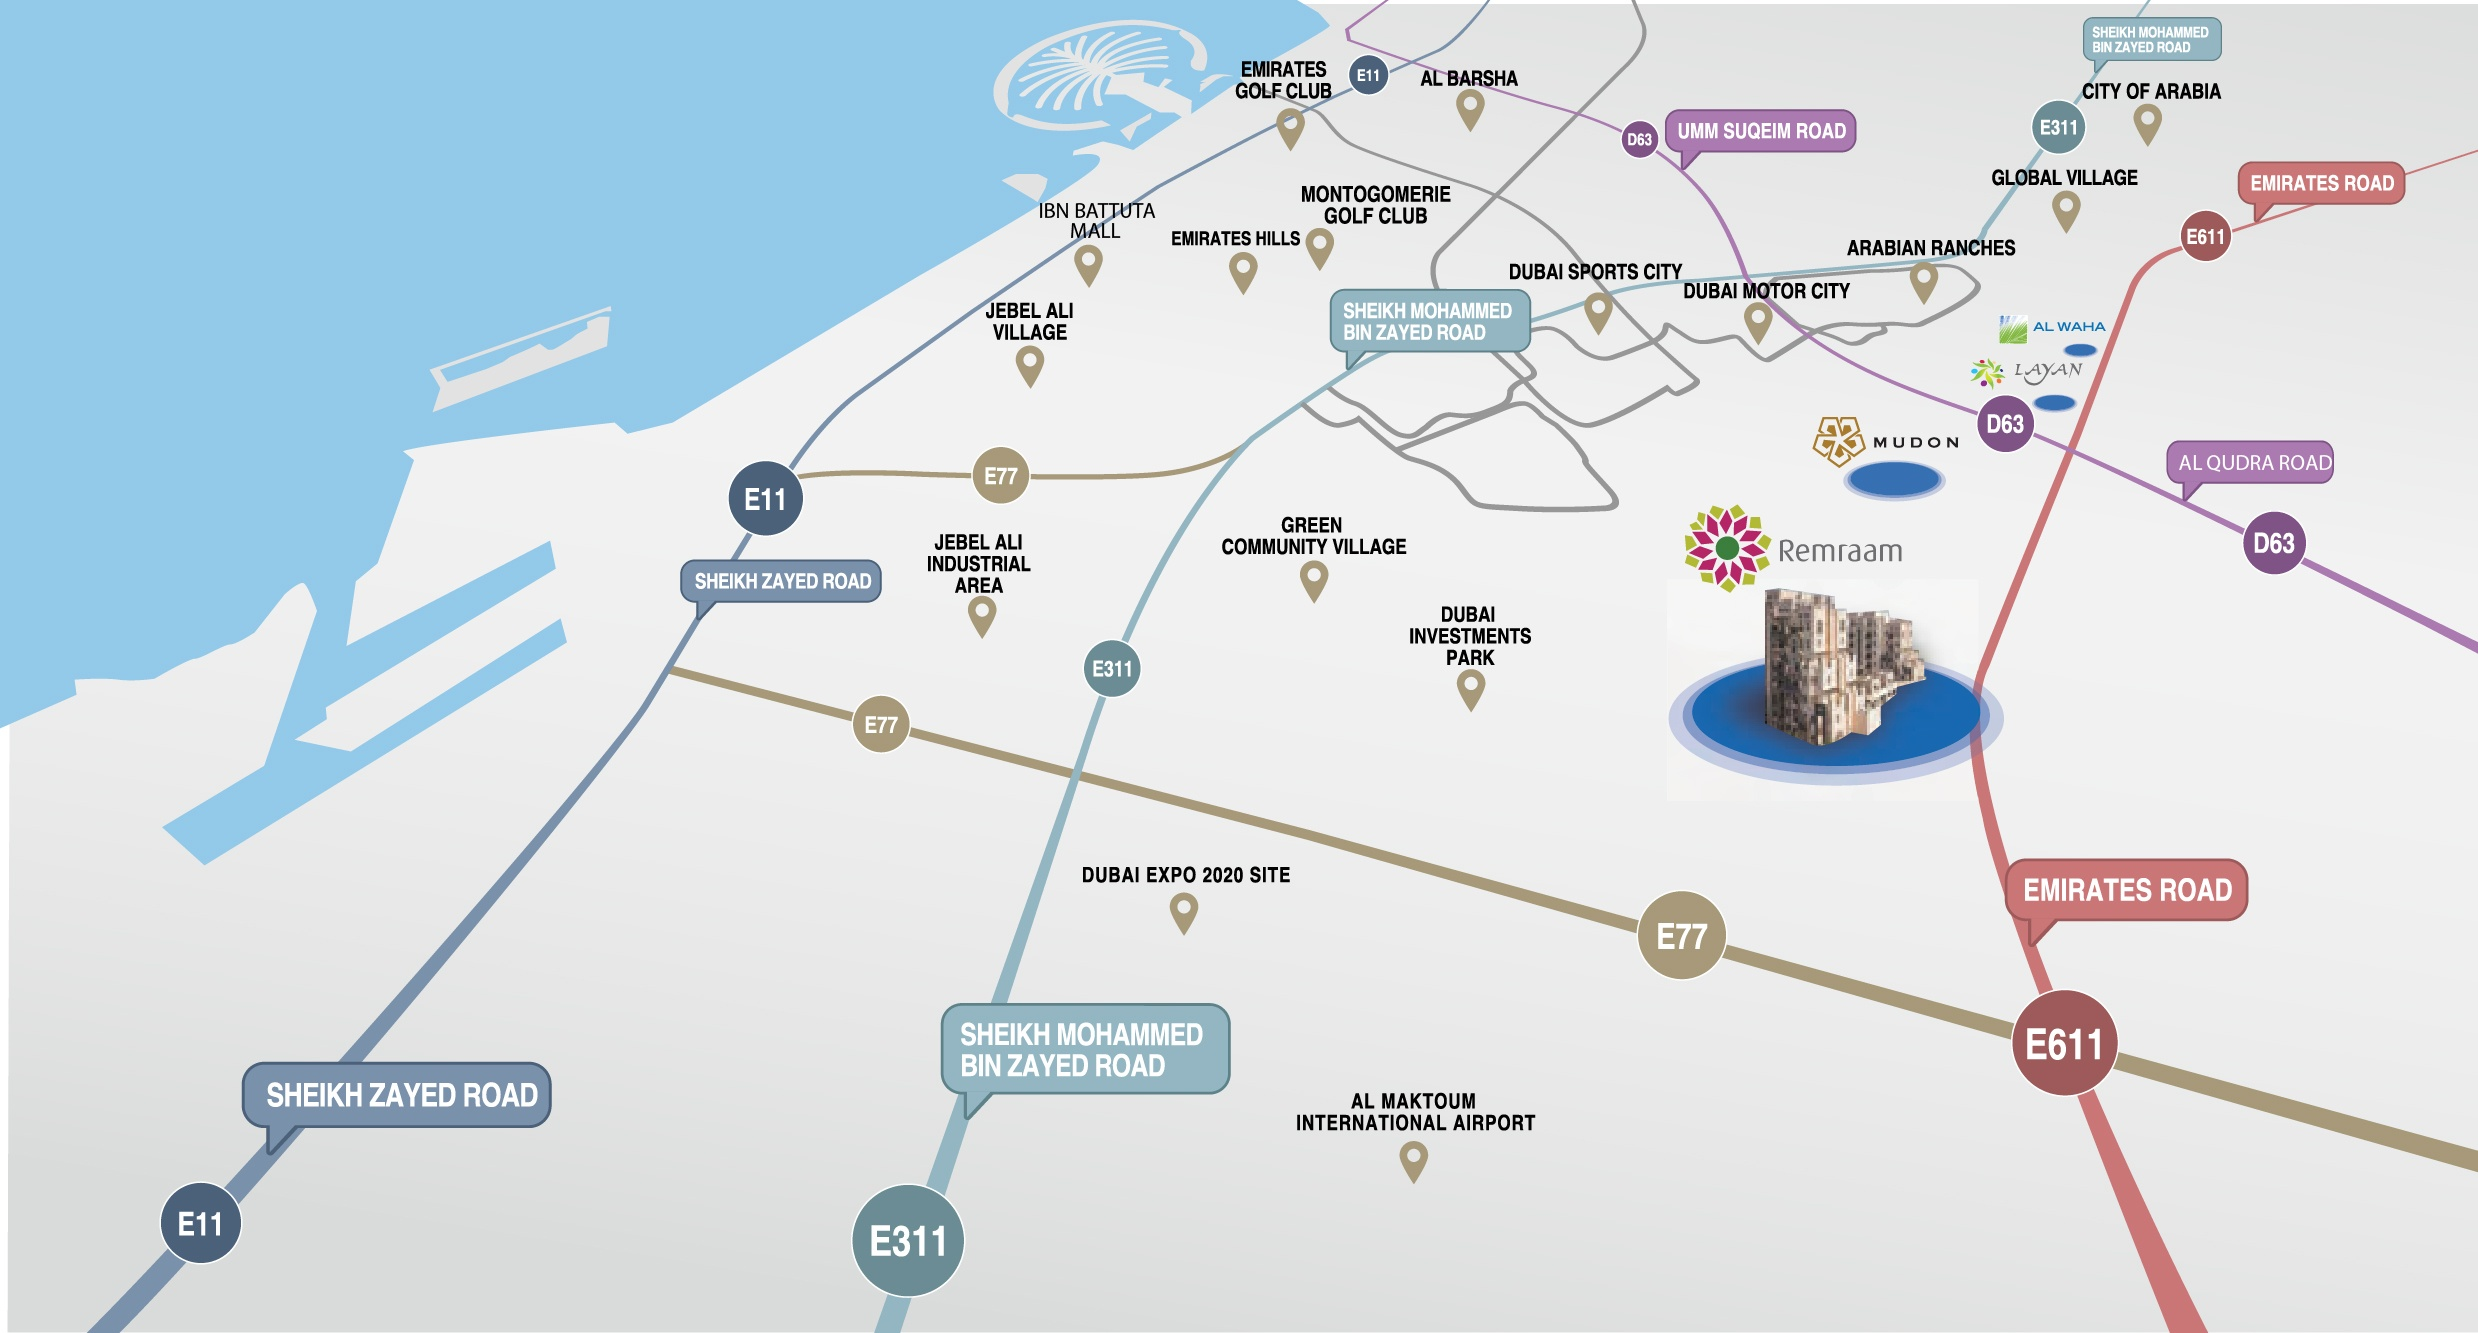 remraam location map dubai investment